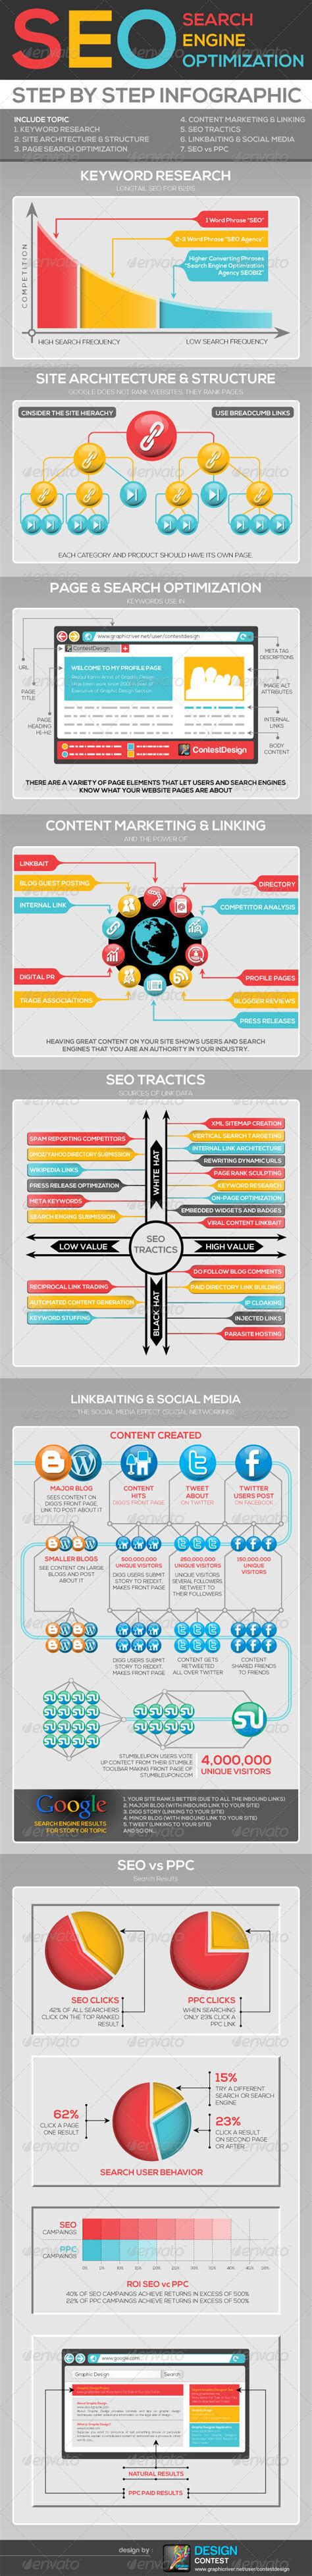 seo search engine optimization all infographic graphicriver